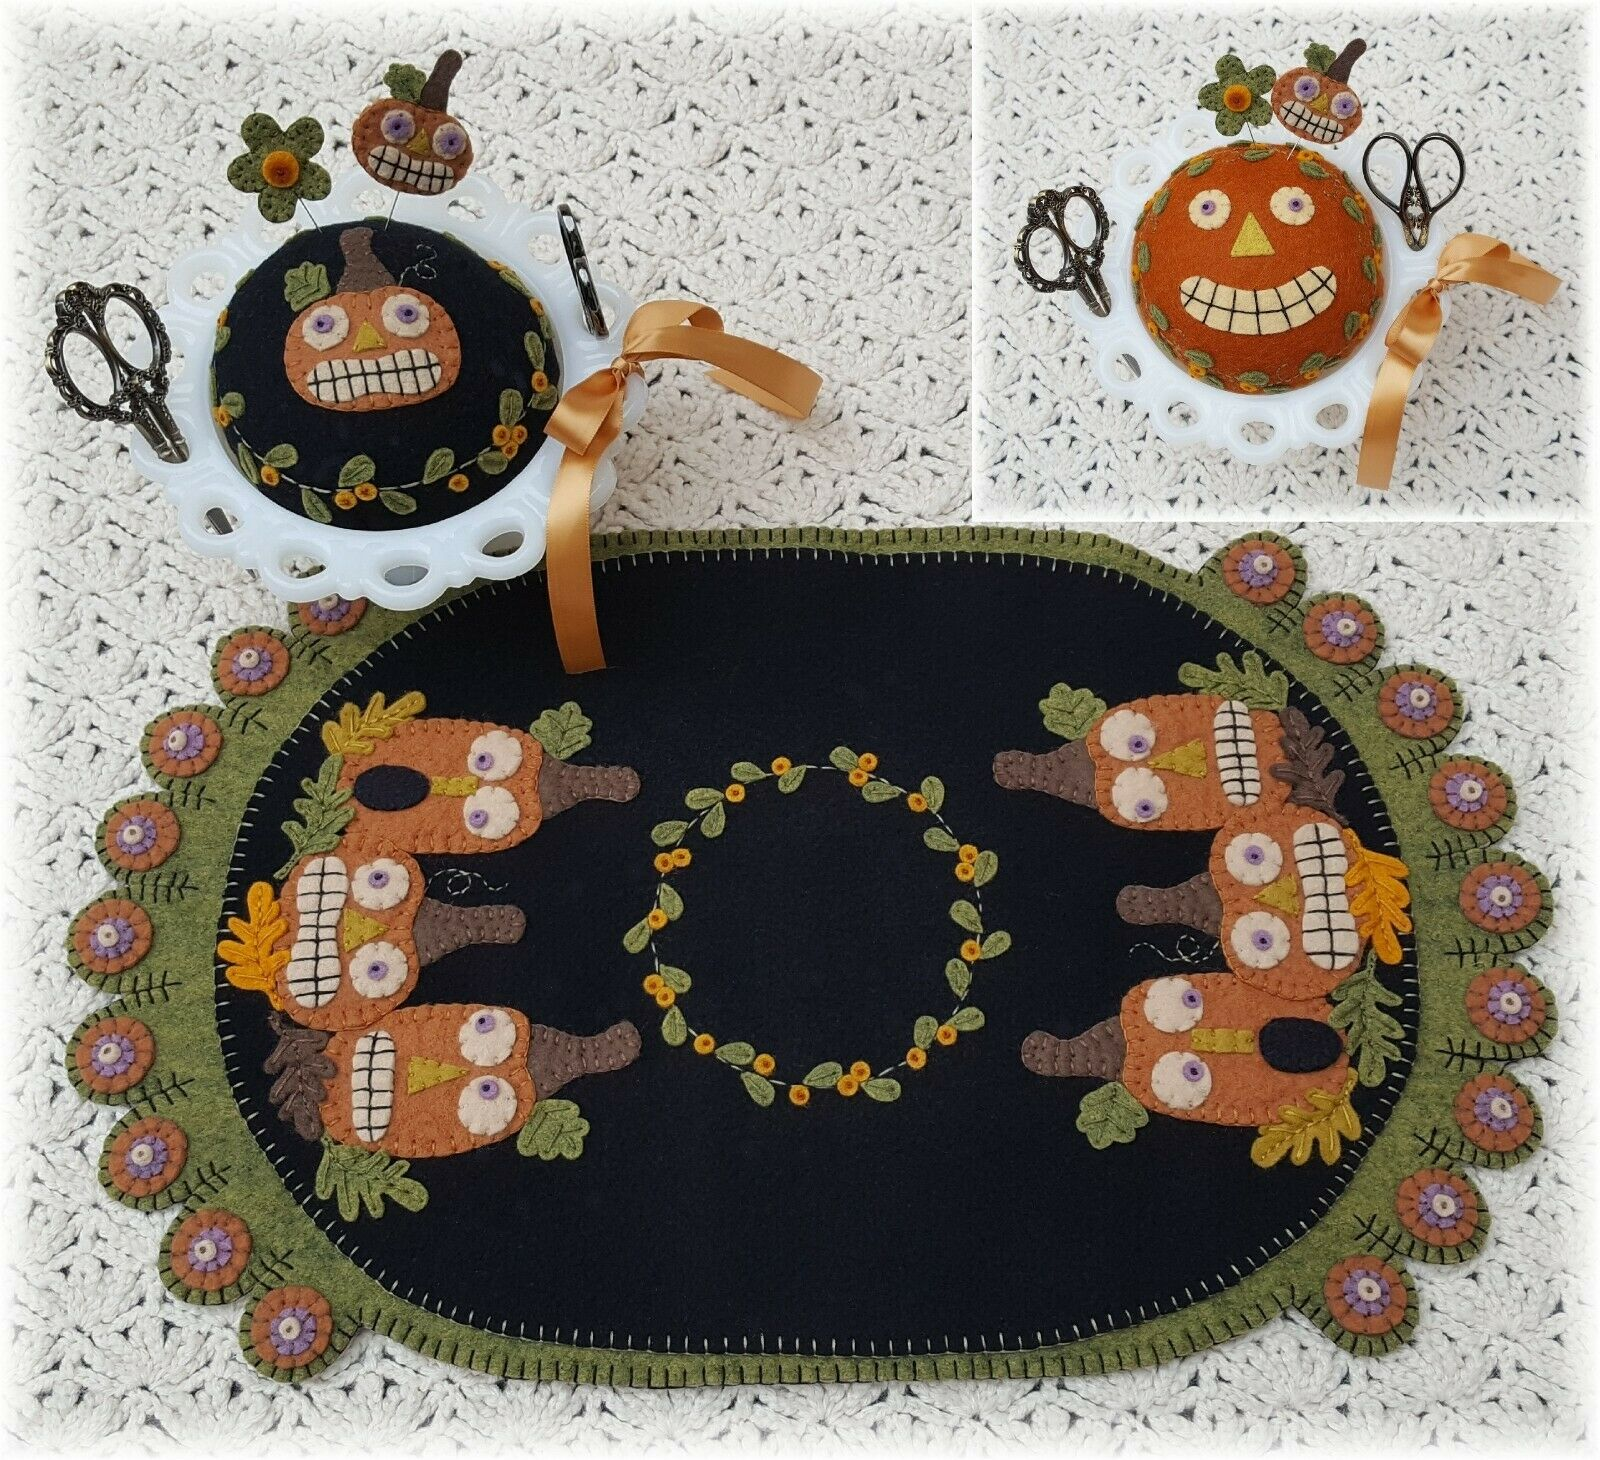 ~*Fright Night*~ Halloween Penny Rug Runner with Pincushion